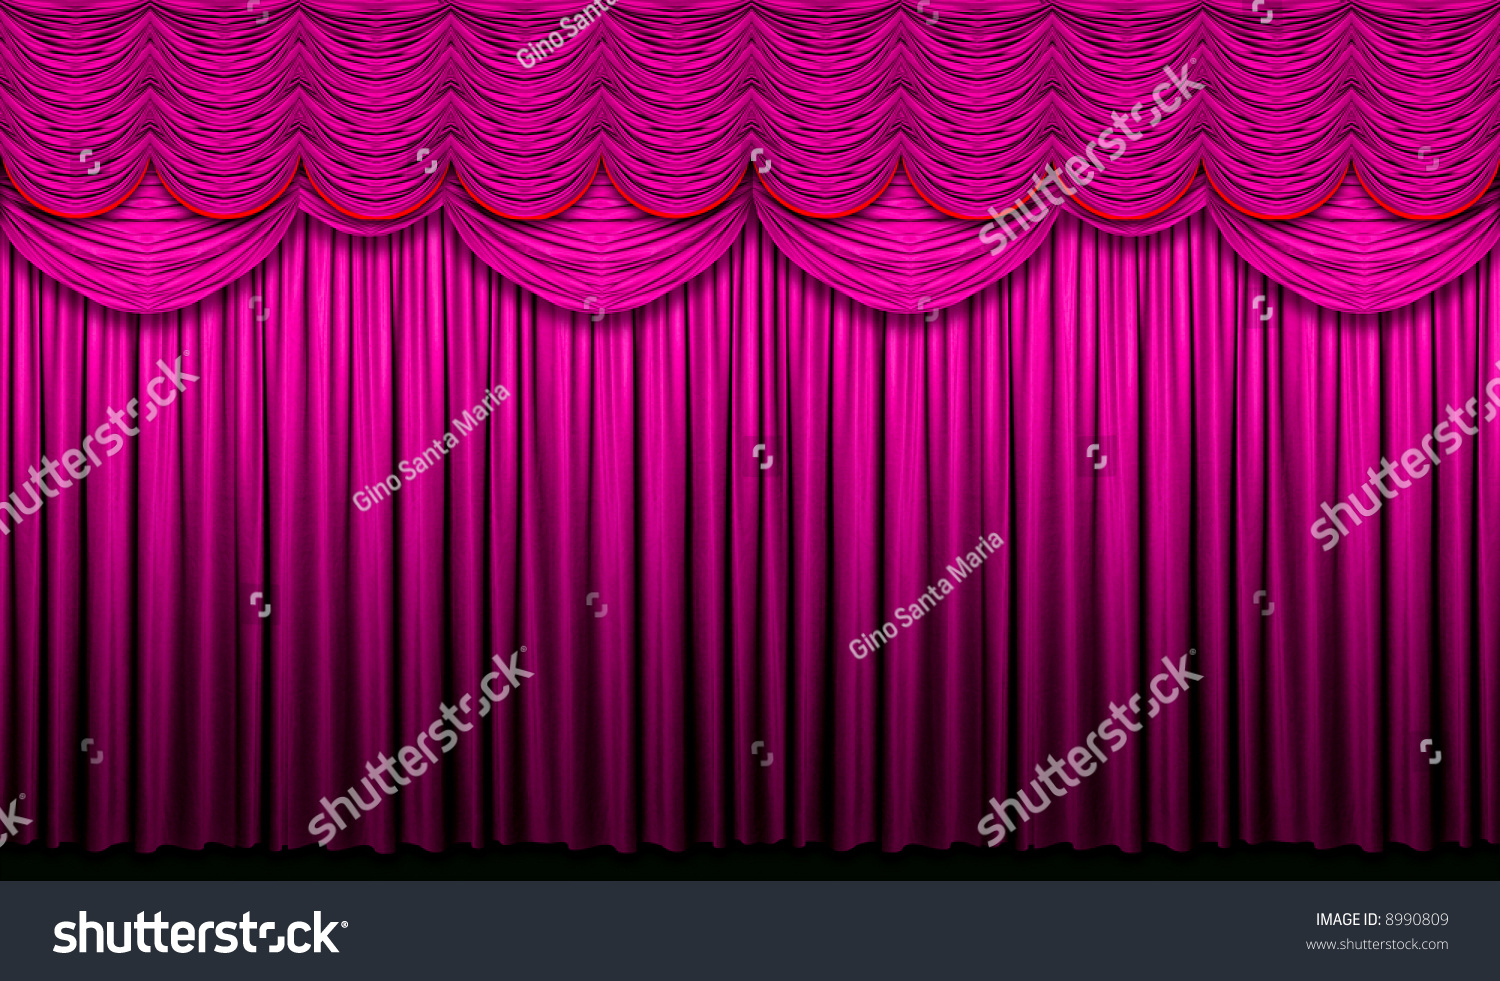 Red stage curtain with lights - Red Violet Stage Curtain With Yellow Accents With Light And Shadow Preview Save To A Lightbox